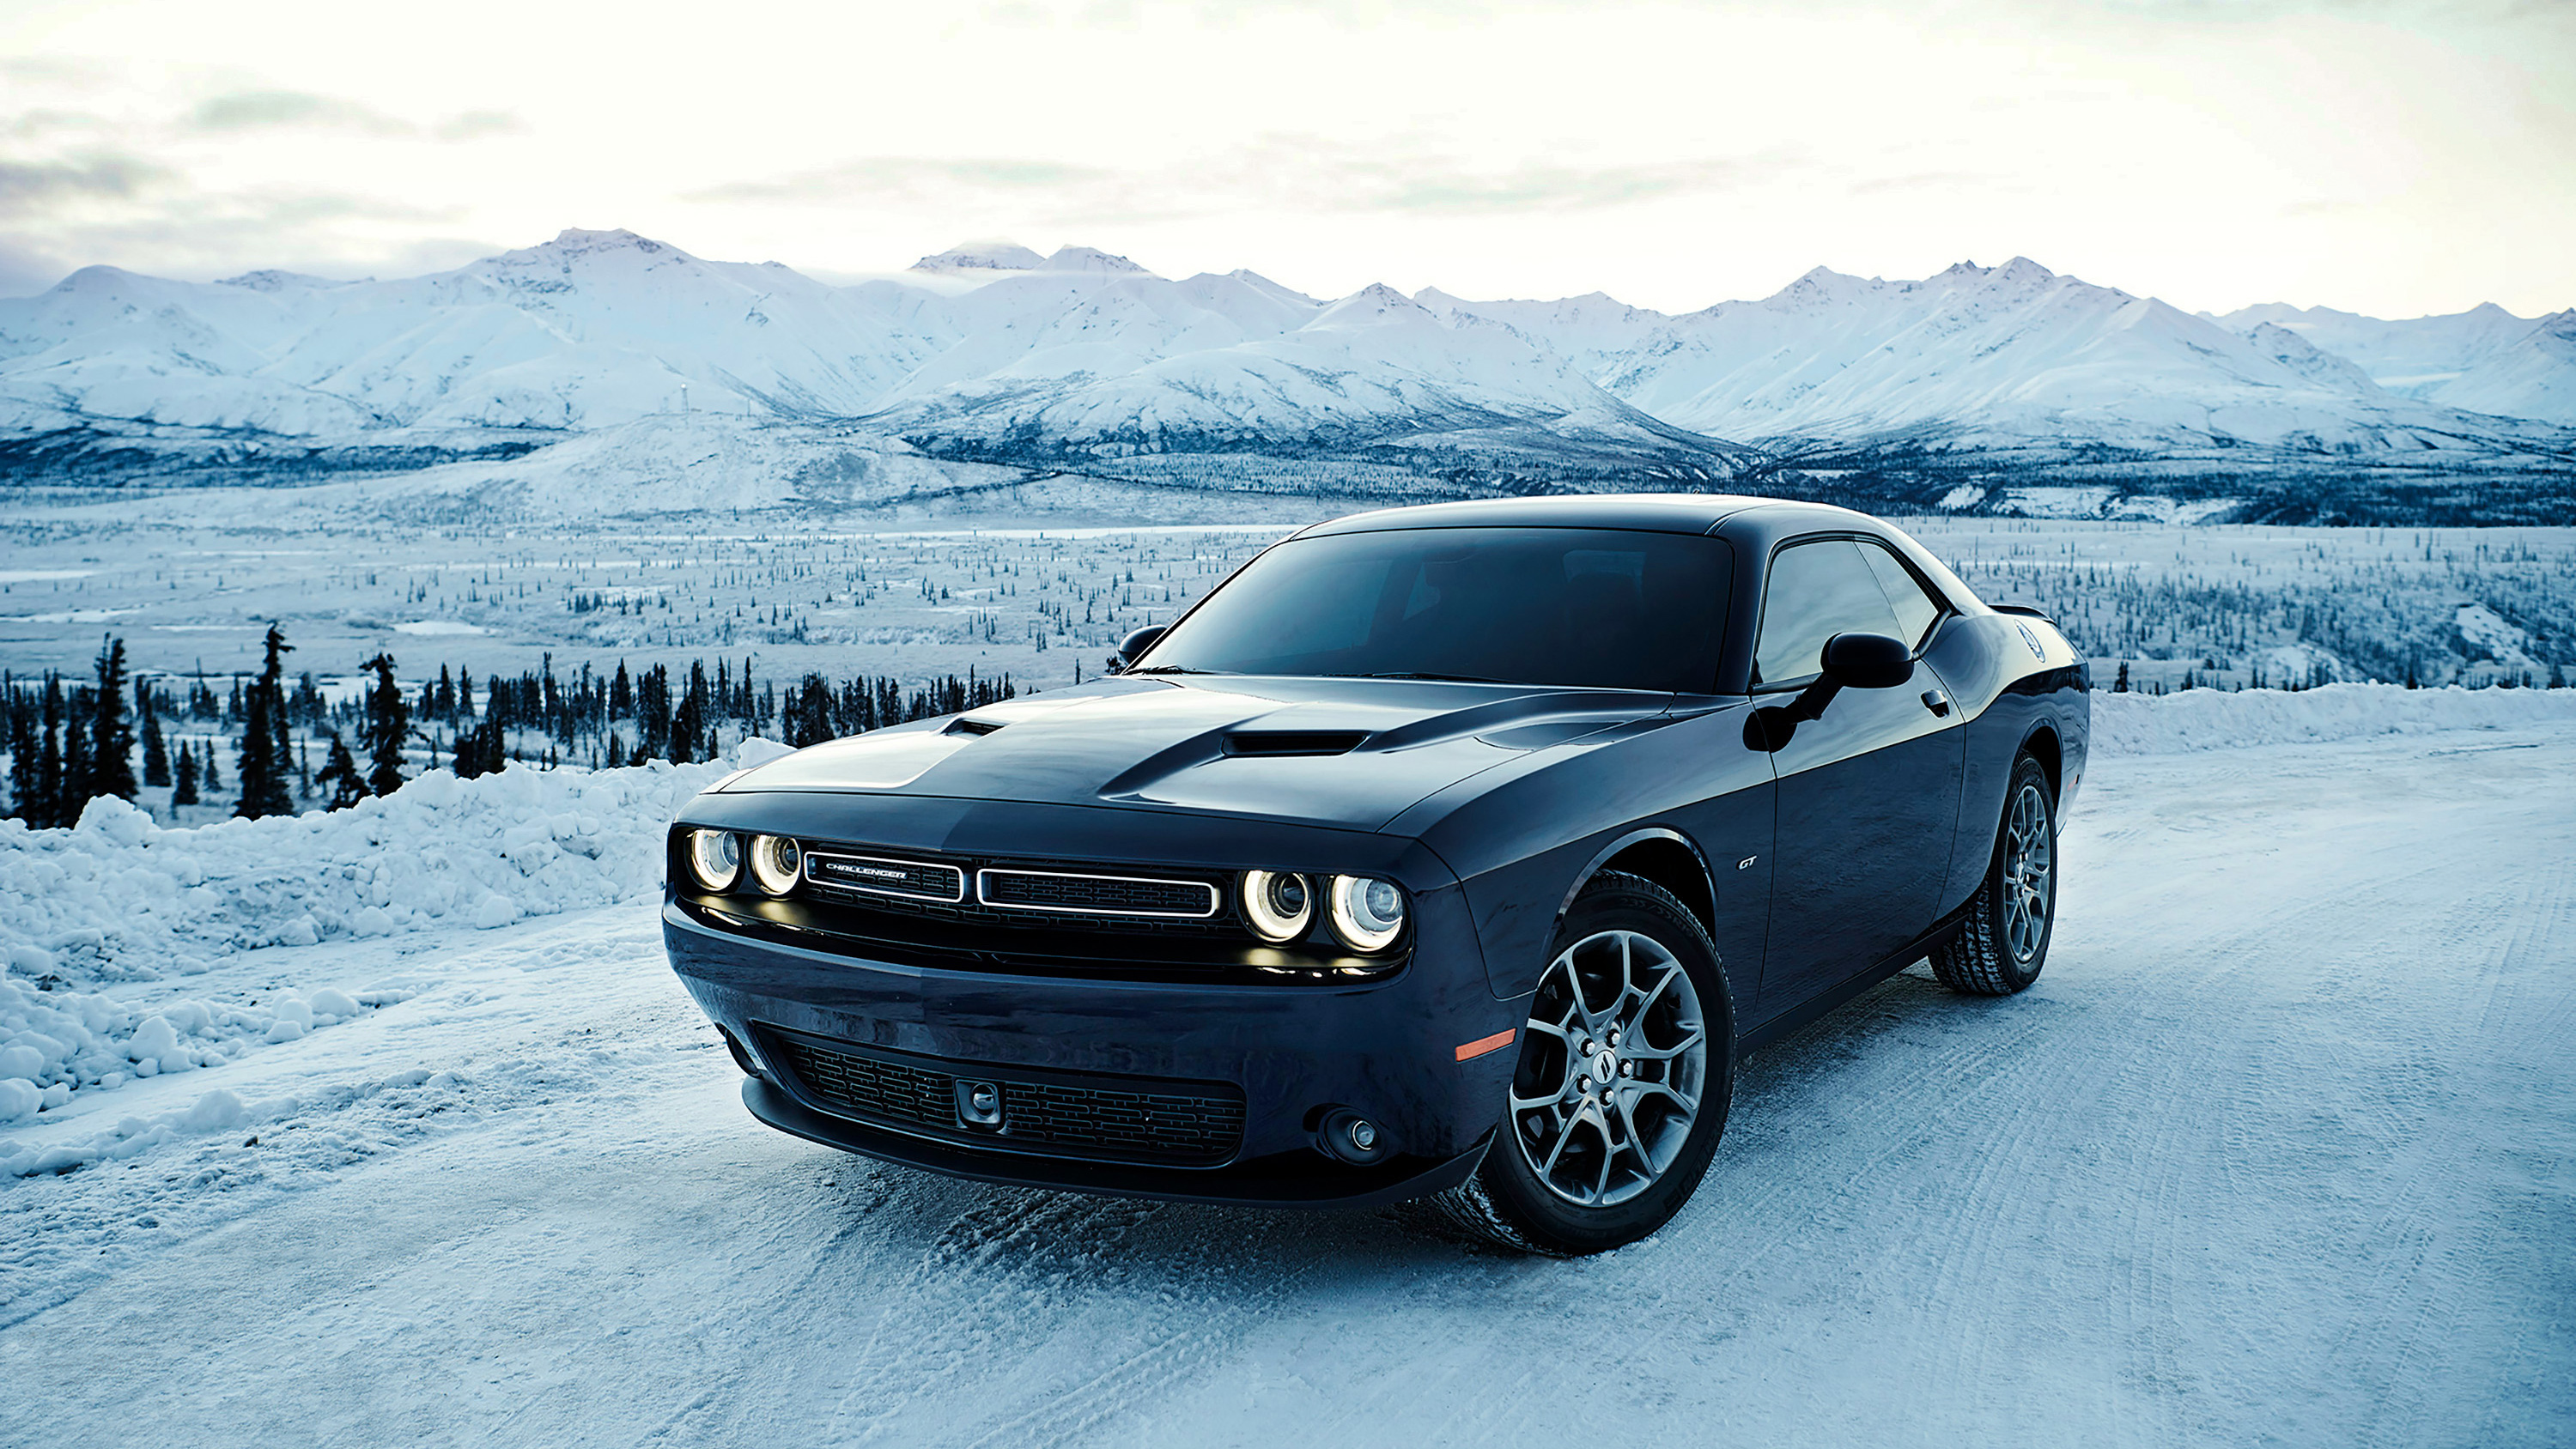 2017 dodge challenger gt awd wallpaper hd car wallpapers. Black Bedroom Furniture Sets. Home Design Ideas